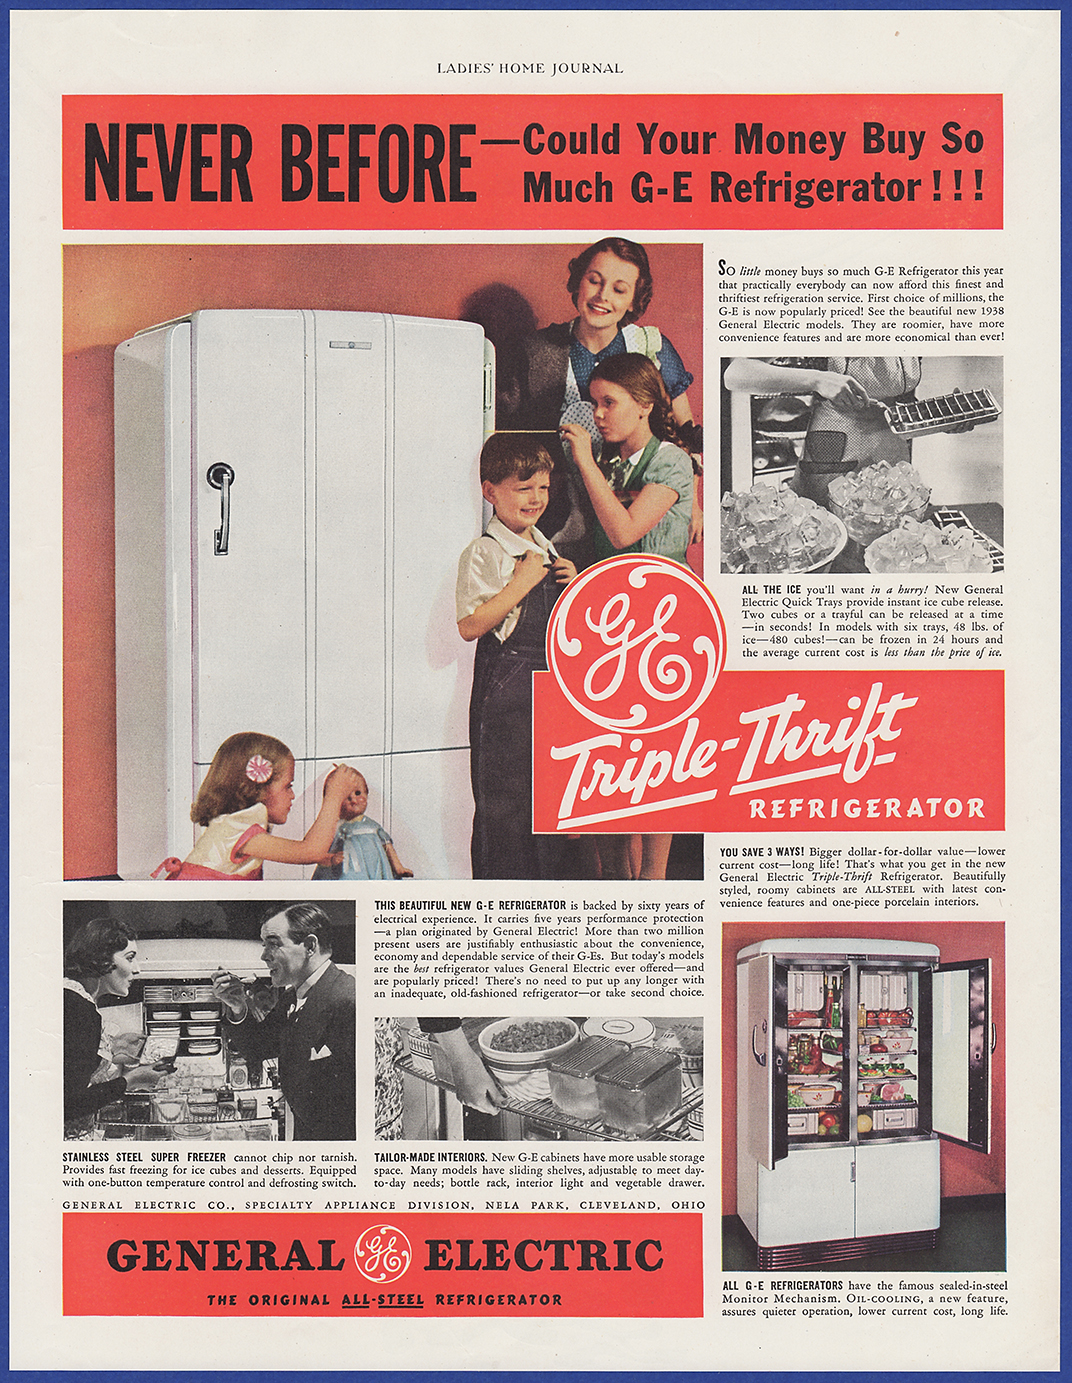 Details about Vintage 1938 GENERAL ELECTRIC GE Refrigerator Kitchen  Appliance Print Ad 30's